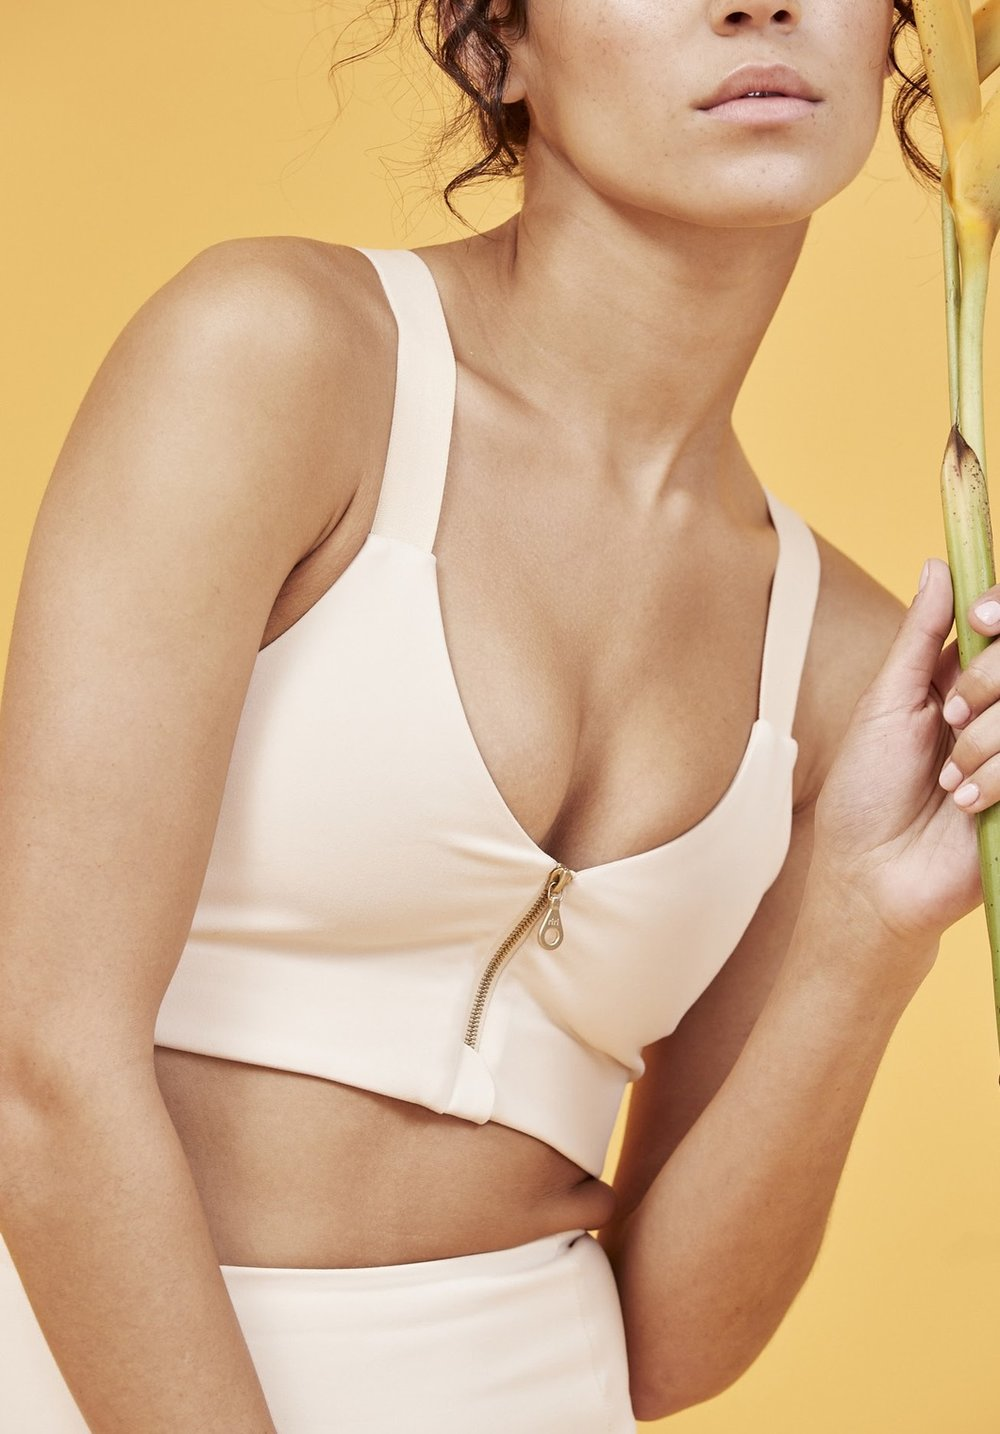 Girlfriend Collective 'Monroe' bra in Sand Dollar,  $48